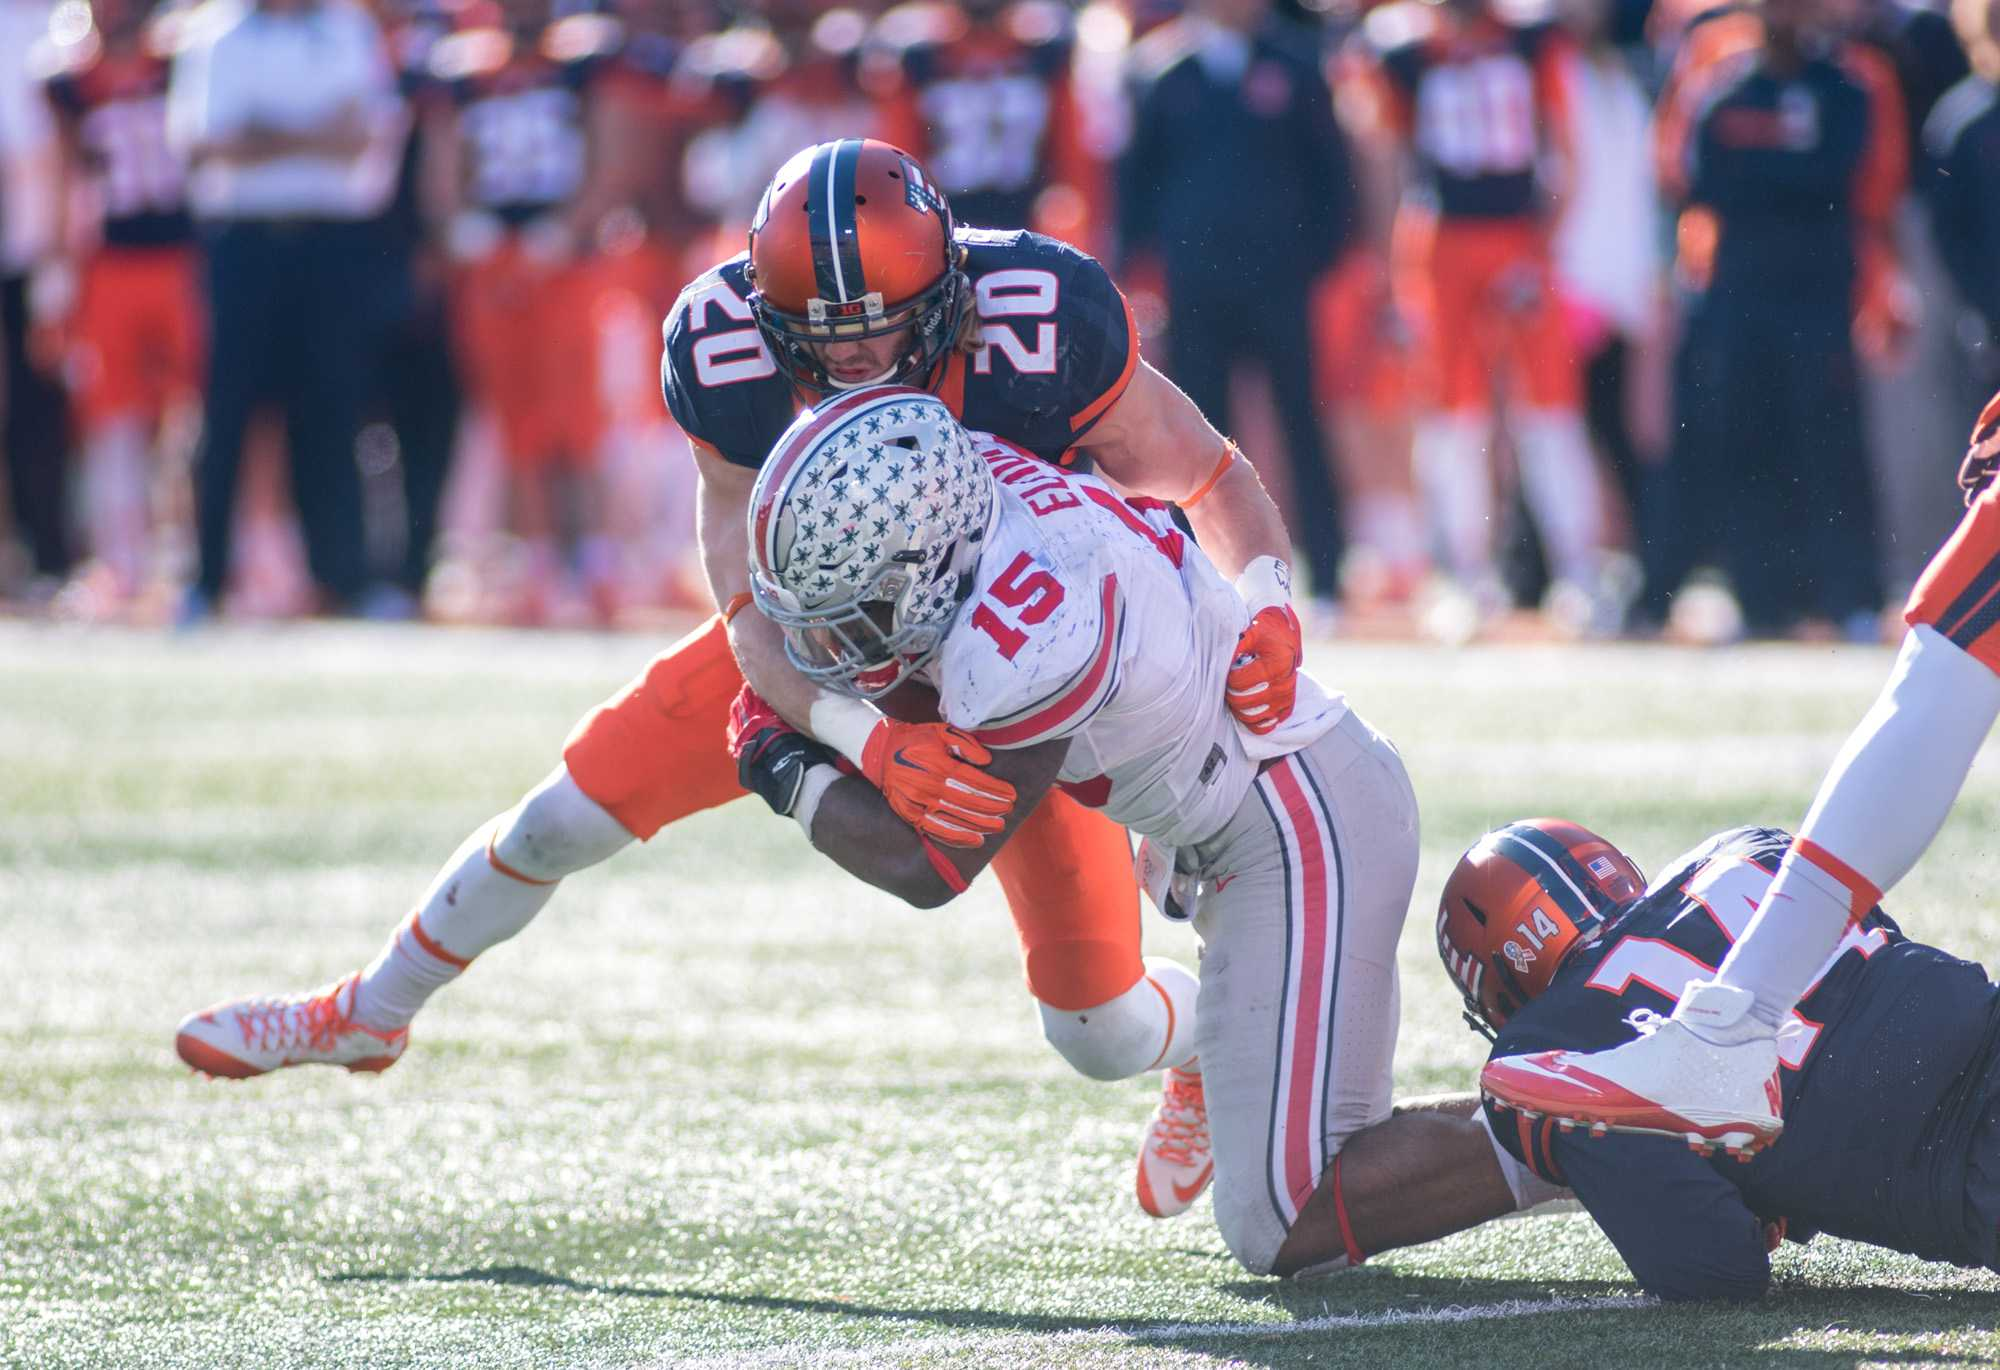 Defensive back Clayton Fedejelem makes a tackle on Ohio State running back Ezekiel Elliot during Saturday's game at Memorial Stadium. Illinois lost 28-3.